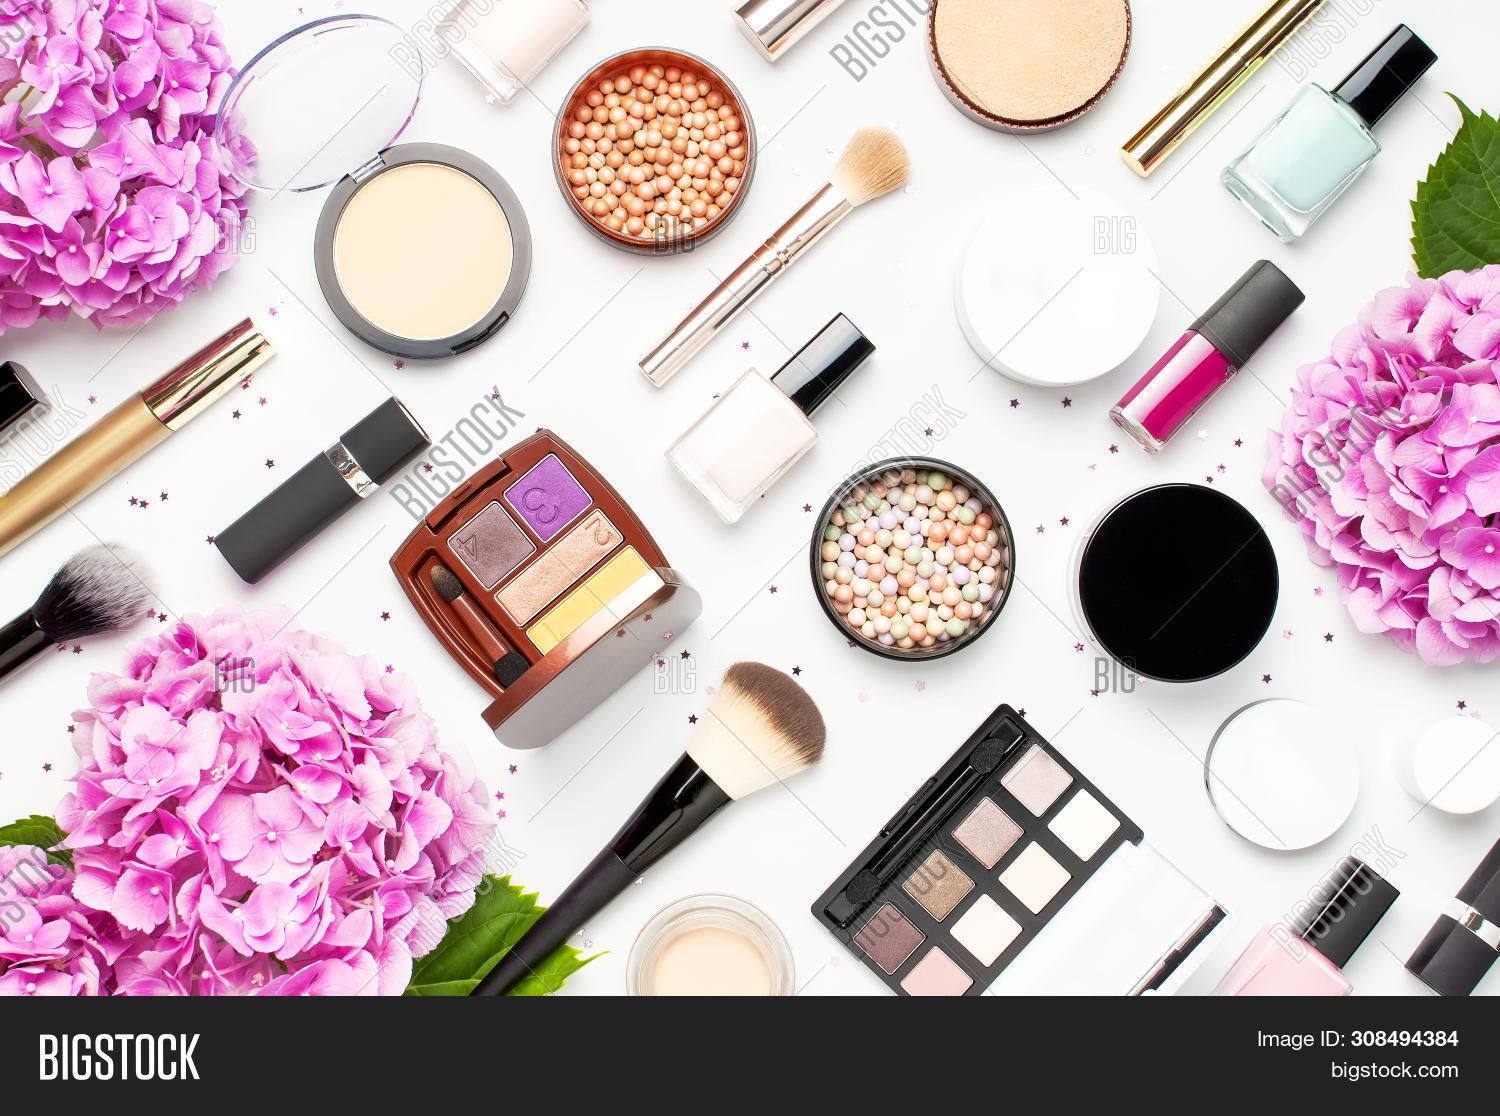 artist,background,balls,beautiful,beauty,blogger,brush,care,closeup,color,colorful,composition,concept,confetti,cosmetic,cosmetology,decorative,different,eye,eyeshadow,facial,fashion,female,flat,flowers,glamour,hydrangea,lay,make,make-up,makeup,many,mascara,minimal,modern,nobody,object,personal,pink,pomade,powder,product,professional,ribbons,set,shadow,top,view,woman